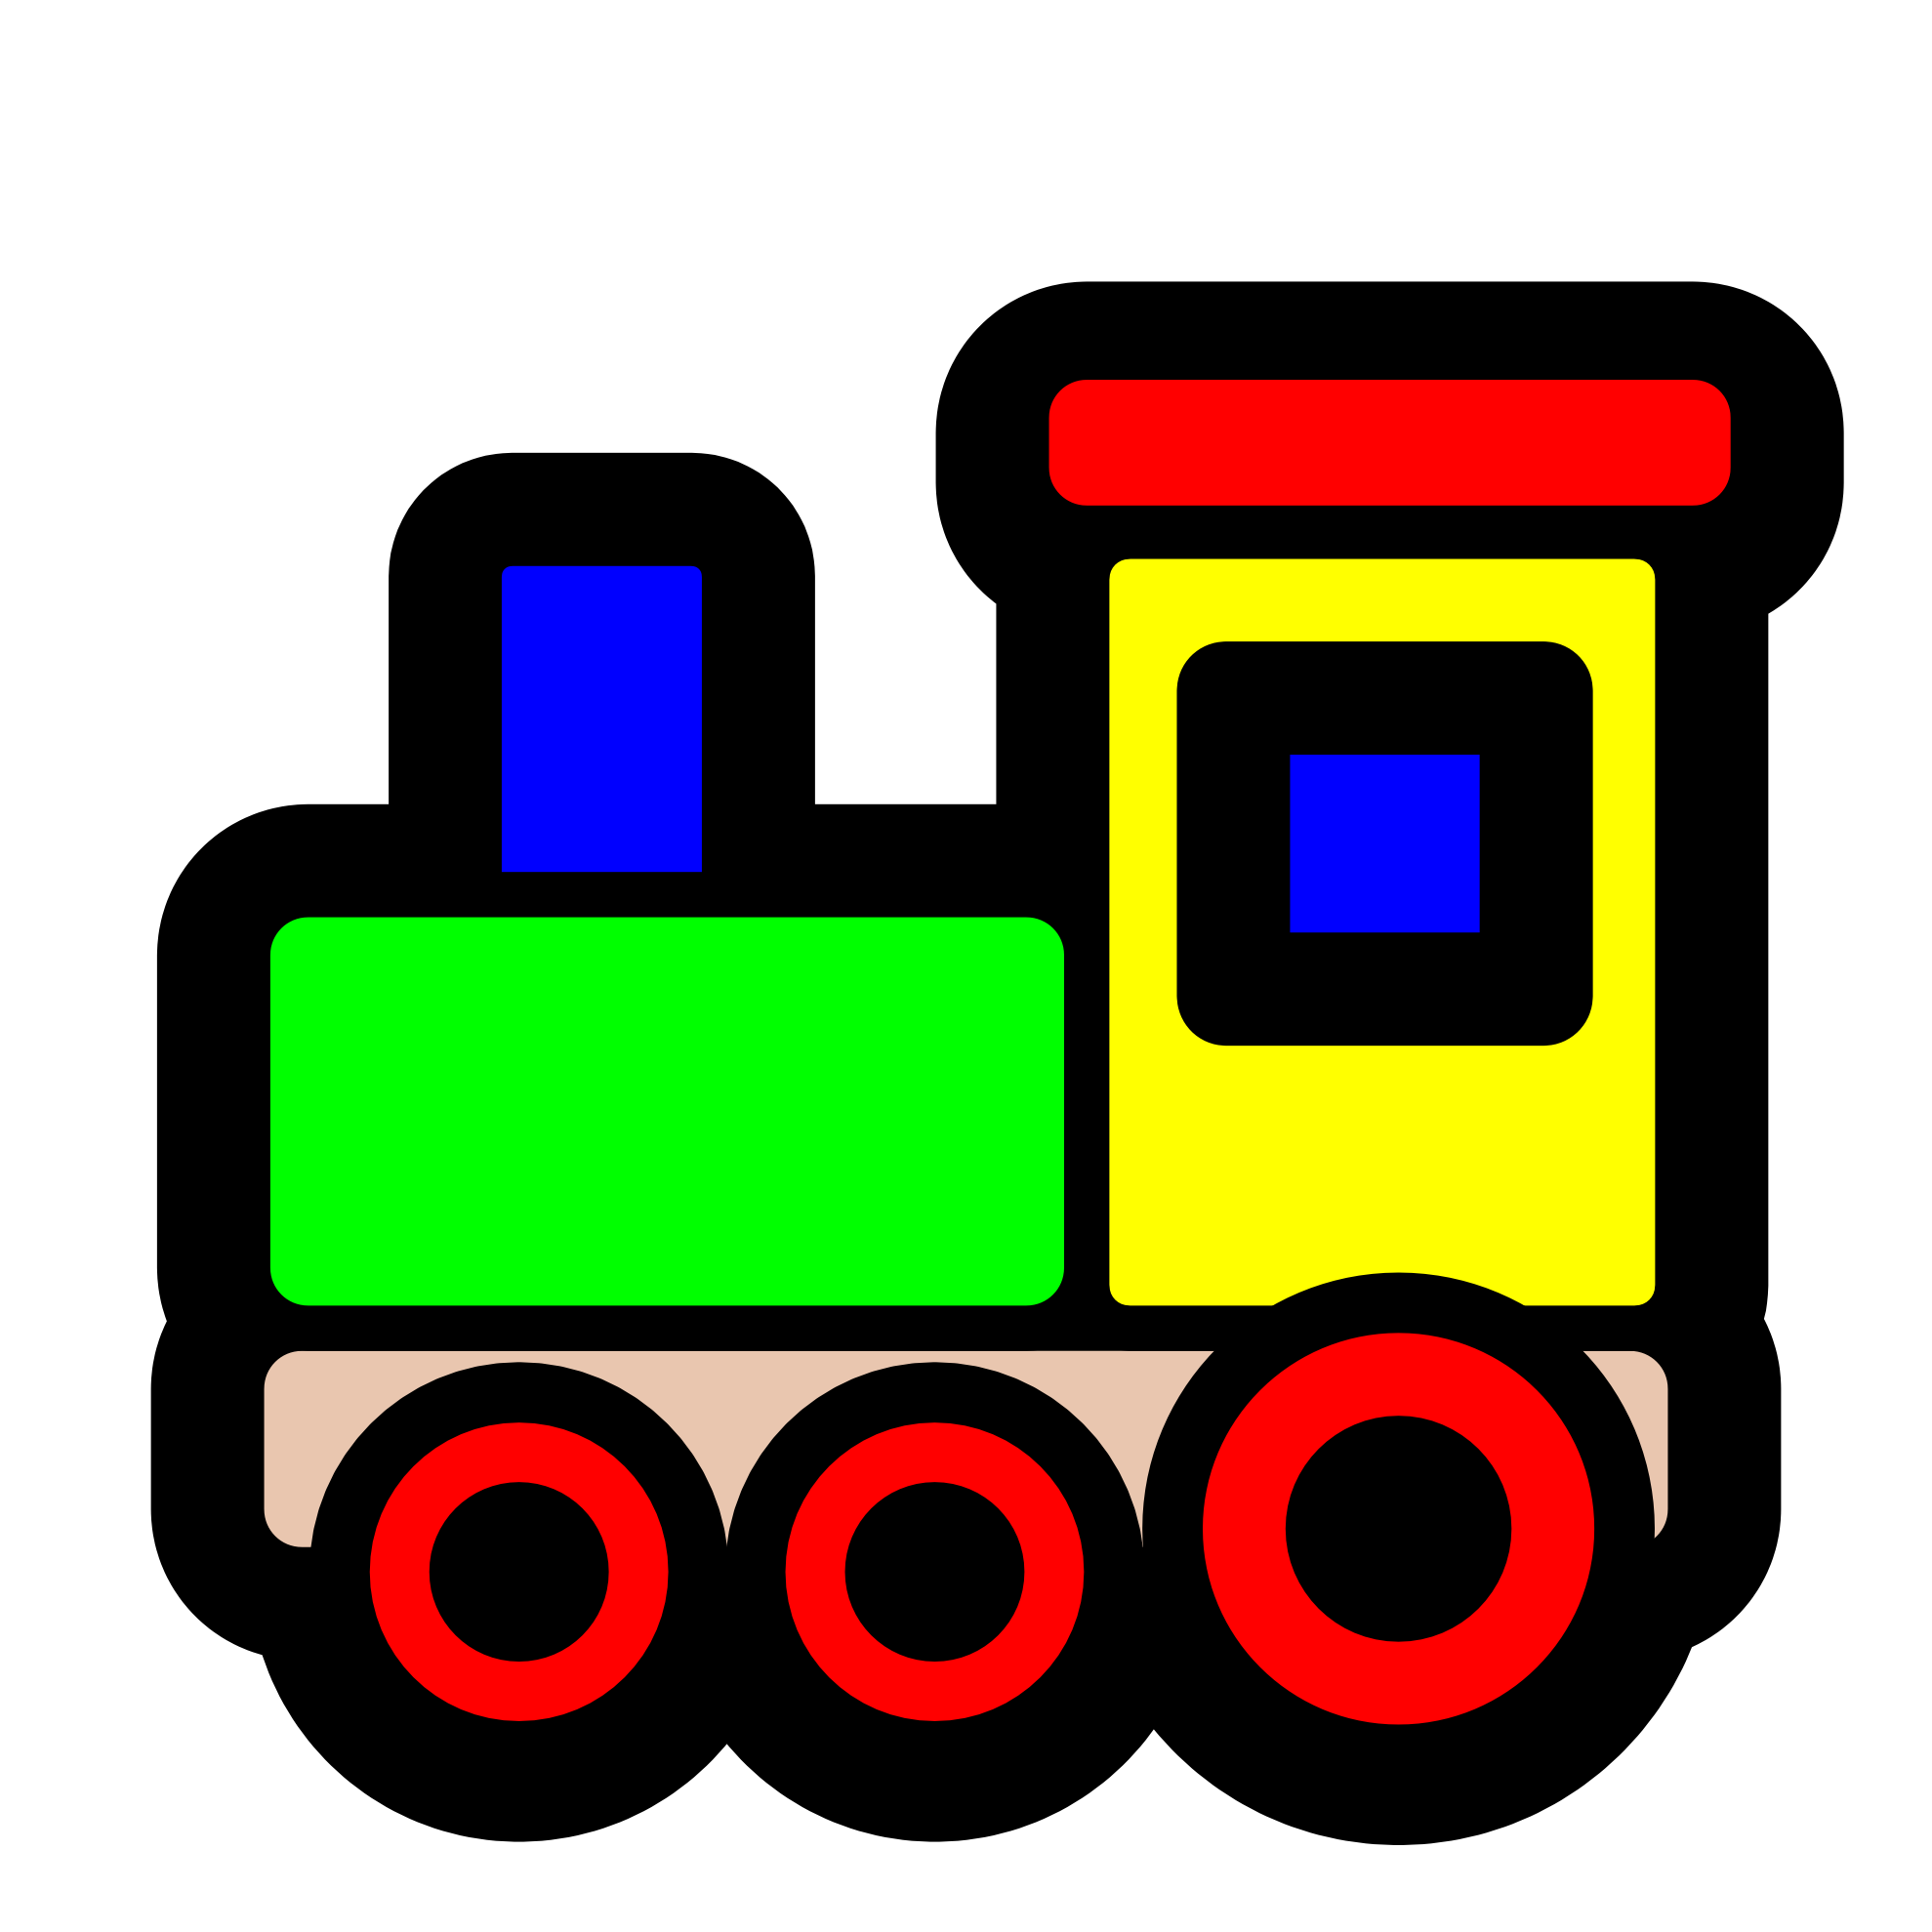 toy trains clipart clipart panda free clipart images rh clipartpanda com toy train clipart black and white Wood Toy Trains